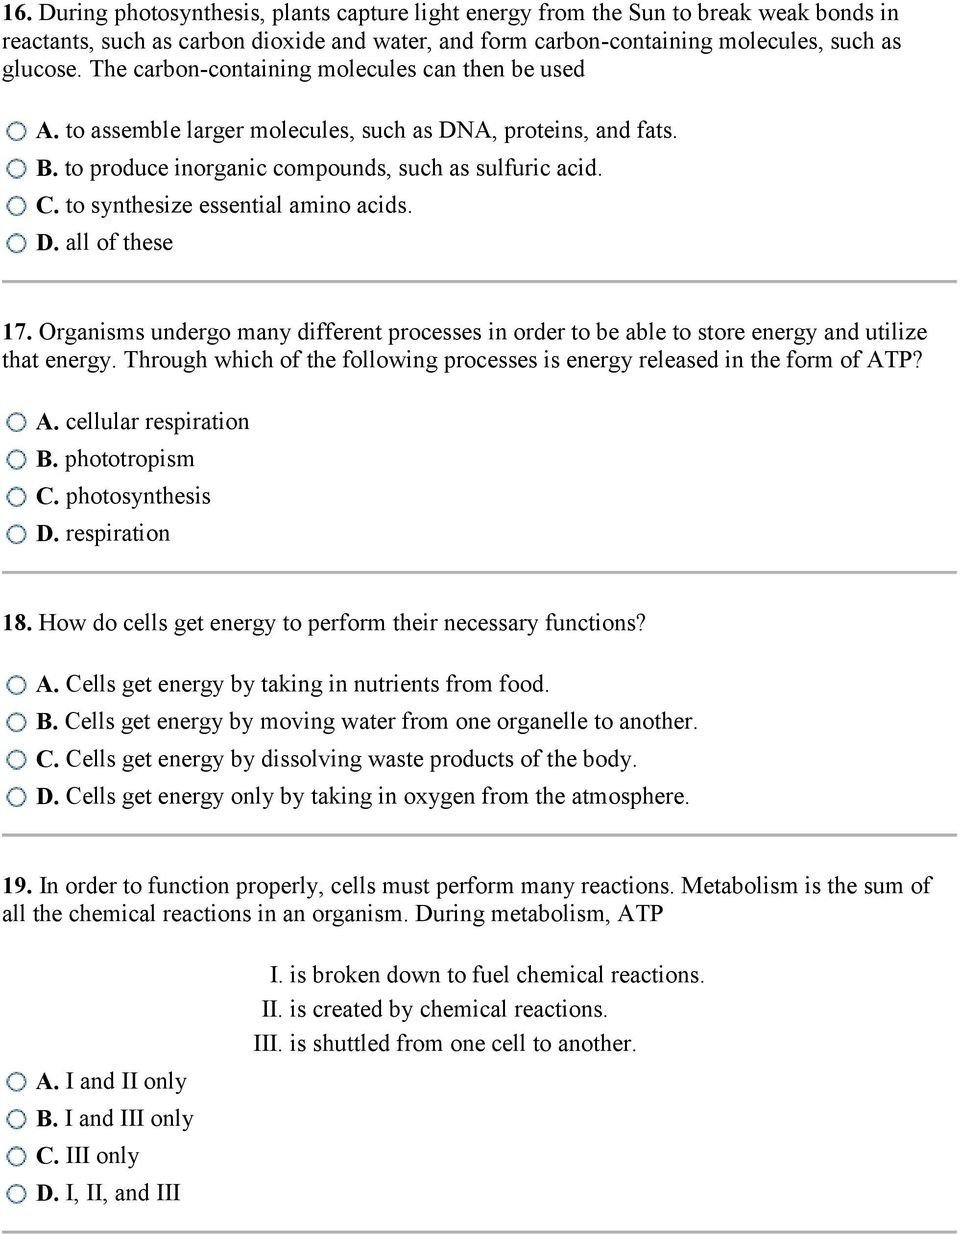 Genetics And Biotechnology Chapter 13 Worksheet Answers Regarding Genetics And Biotechnology Chapter 13 Worksheet Answers